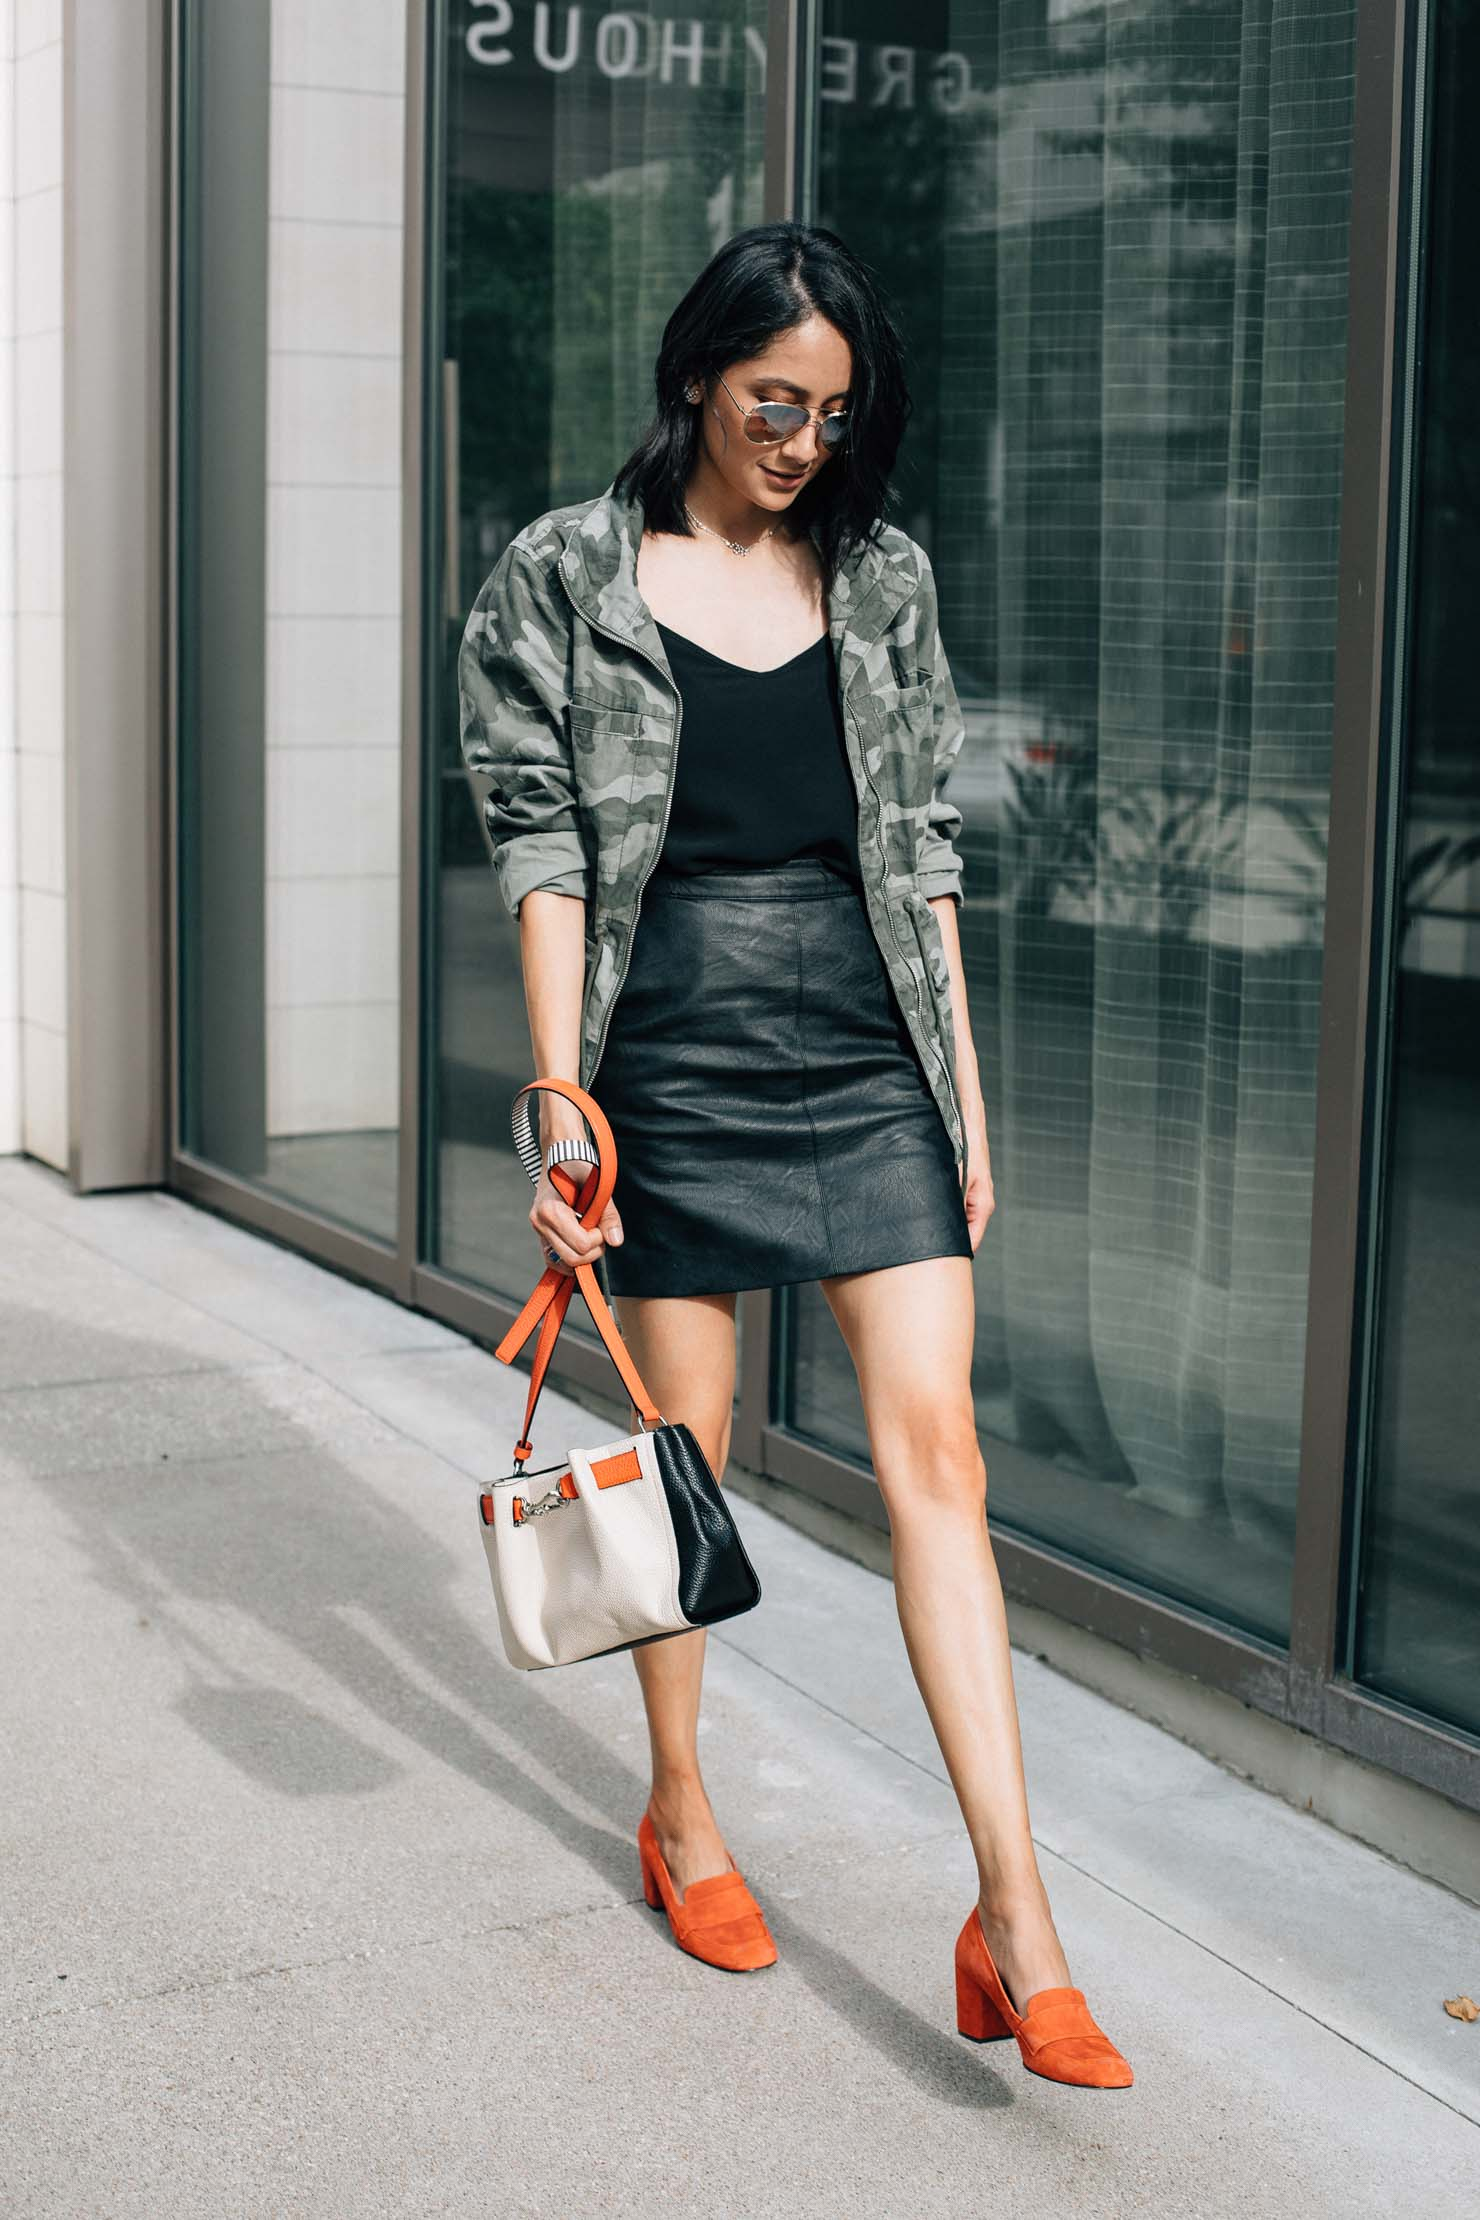 Style blogger Lilly Beltran wearing a black leather skirt with an Old Navy camo jacket and block heel loafers